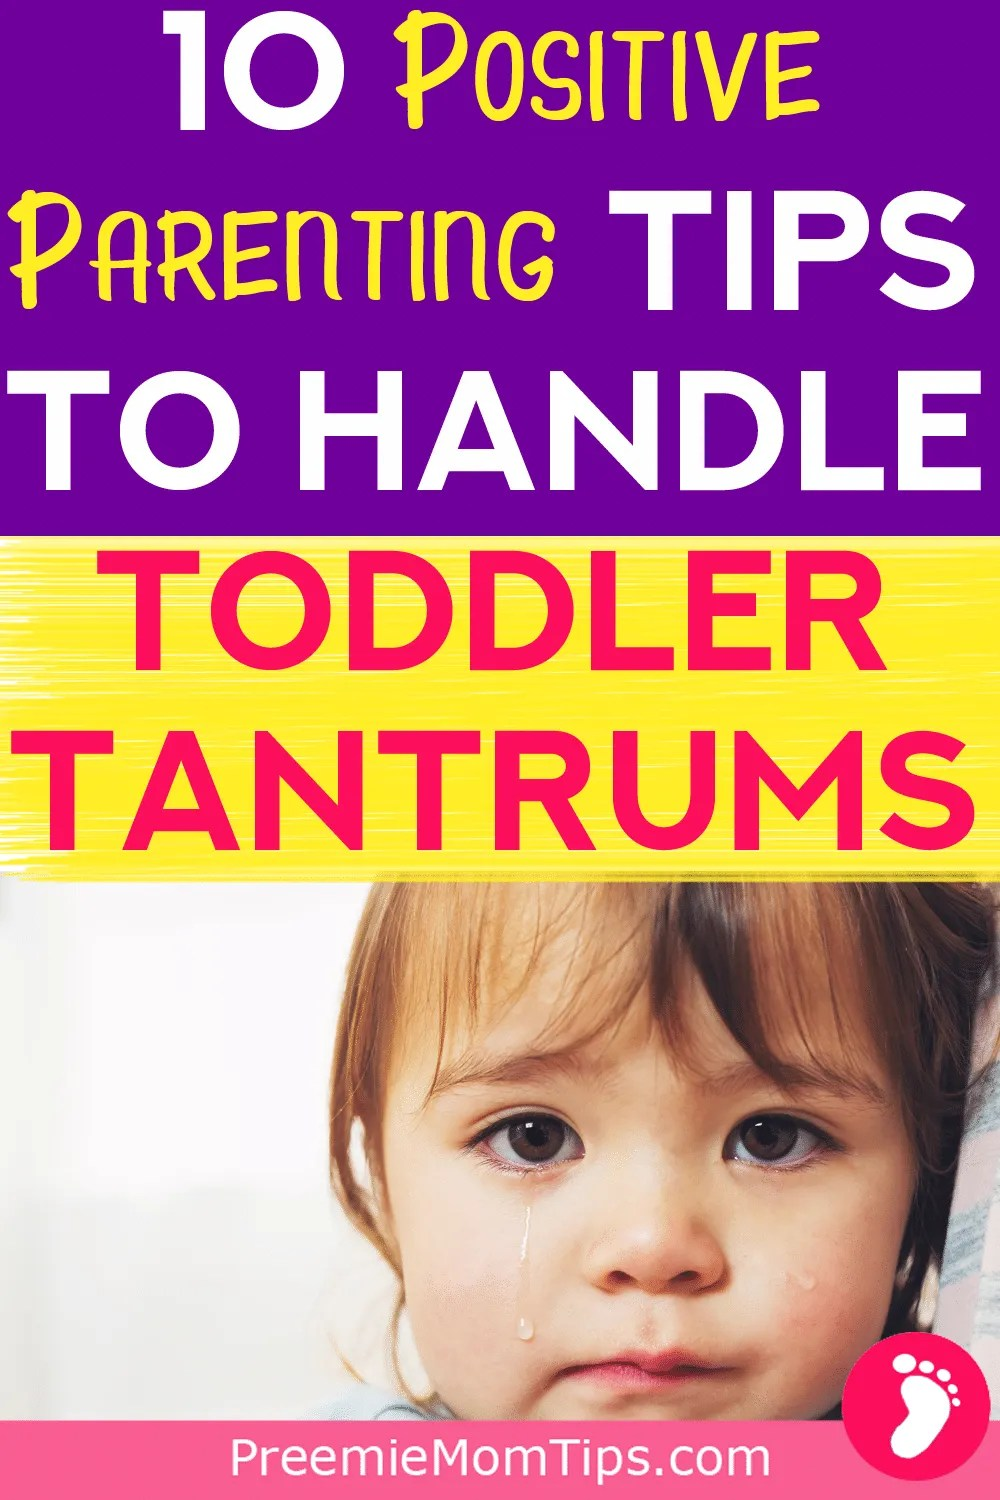 Have your felt that heat of anger rising while your toddler is screaming at the super market? Here are my top tips to handle toddler tantrums by being a positive parenting mom!